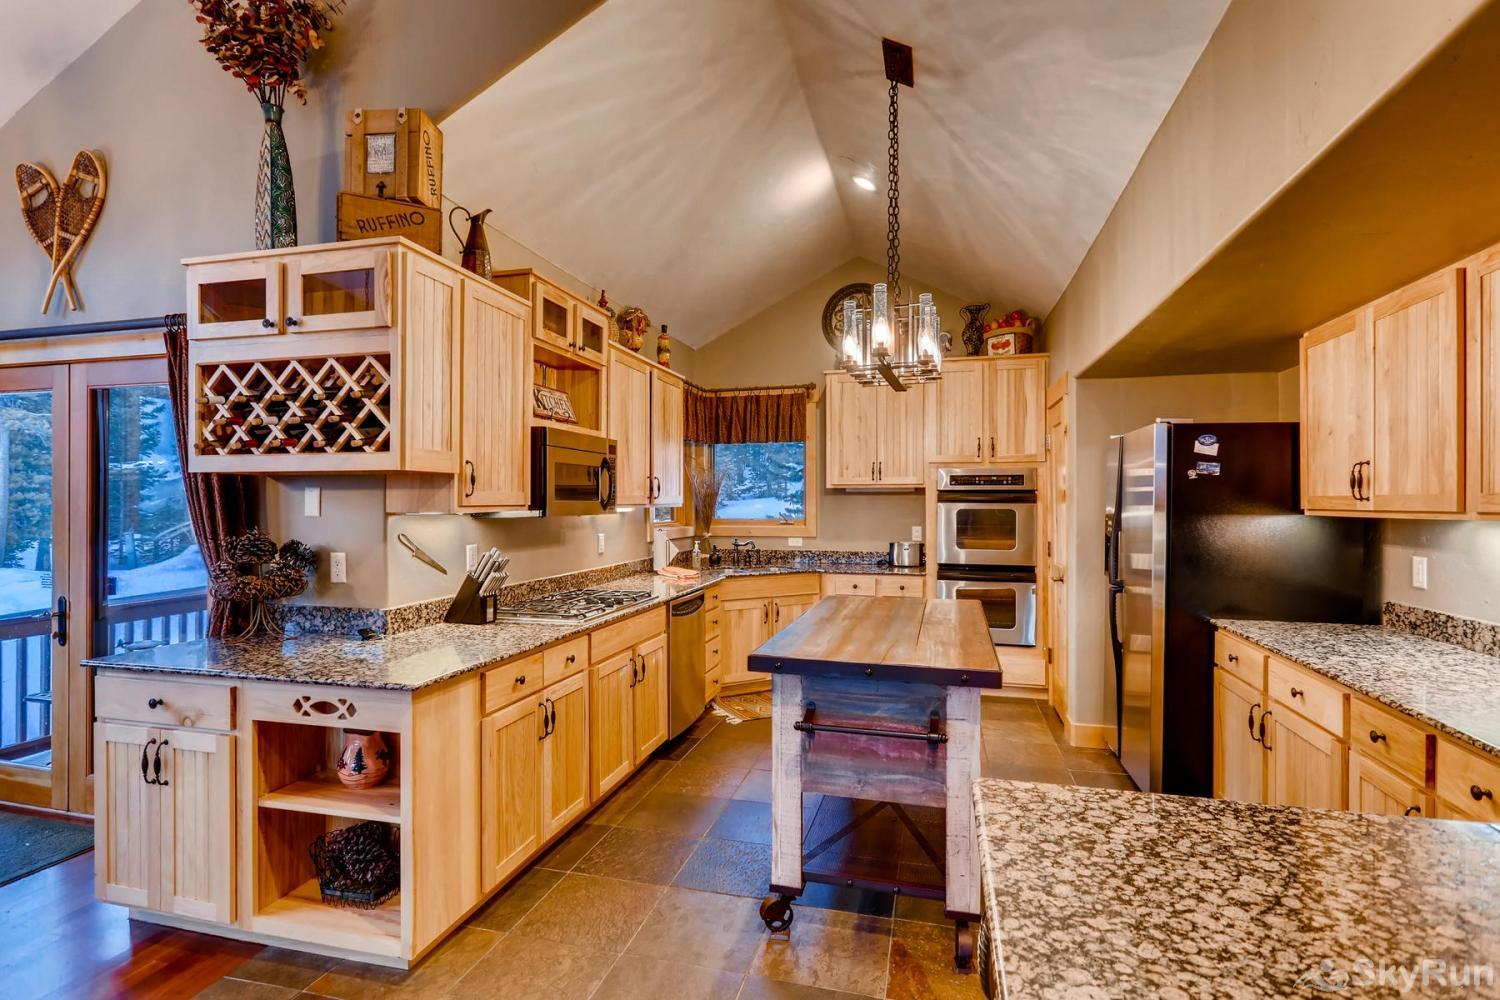 Nangle Woods Retreat Prepare tasty home cooked meals with the convenience of a fully equipped kitchen